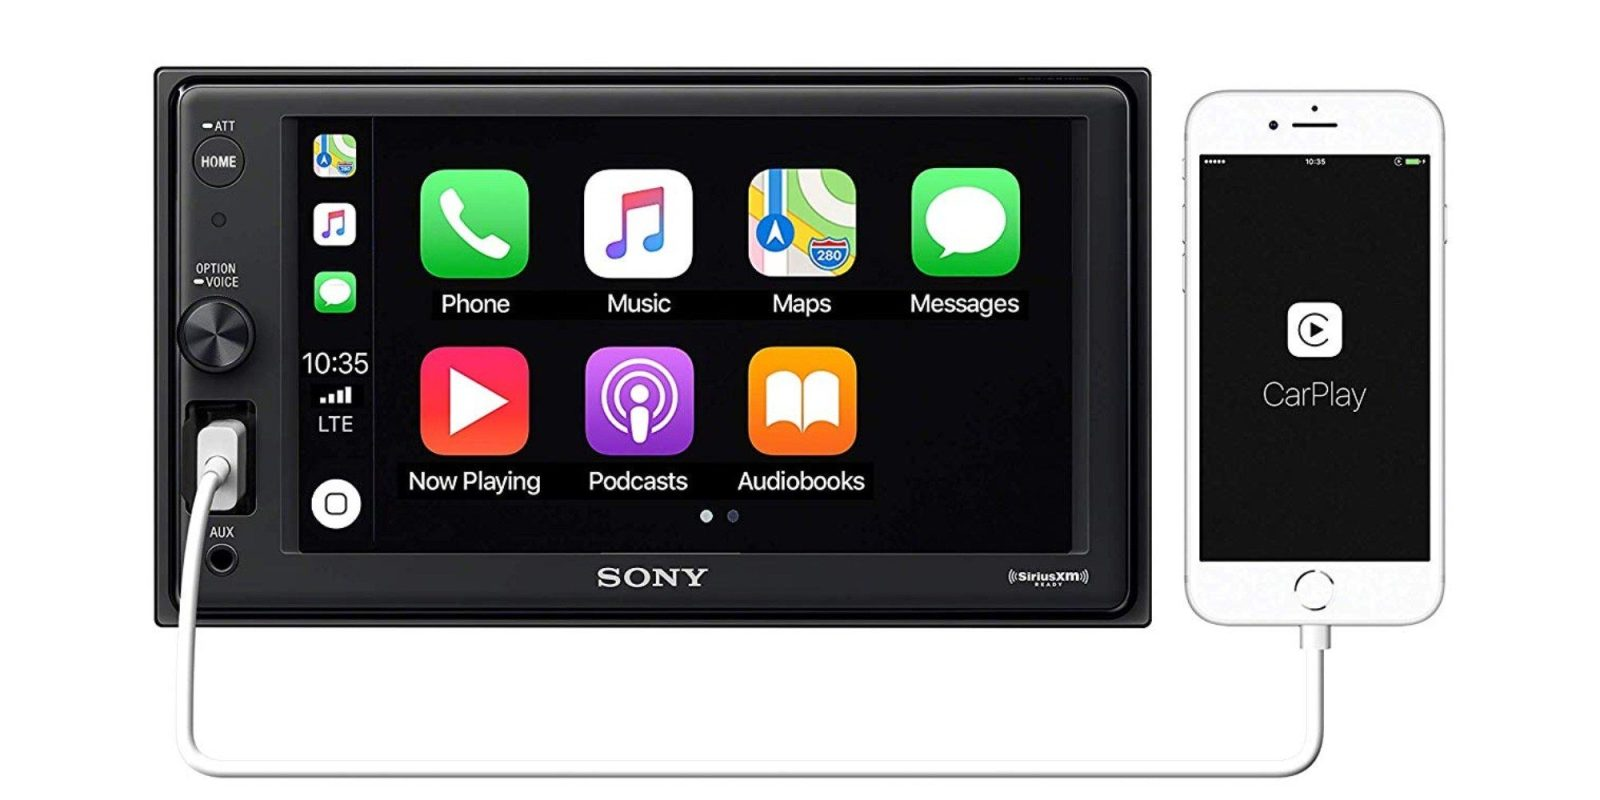 Thursday deals: Sony CarPlay Receiver $248, Twelve South launches Back to School sale, more